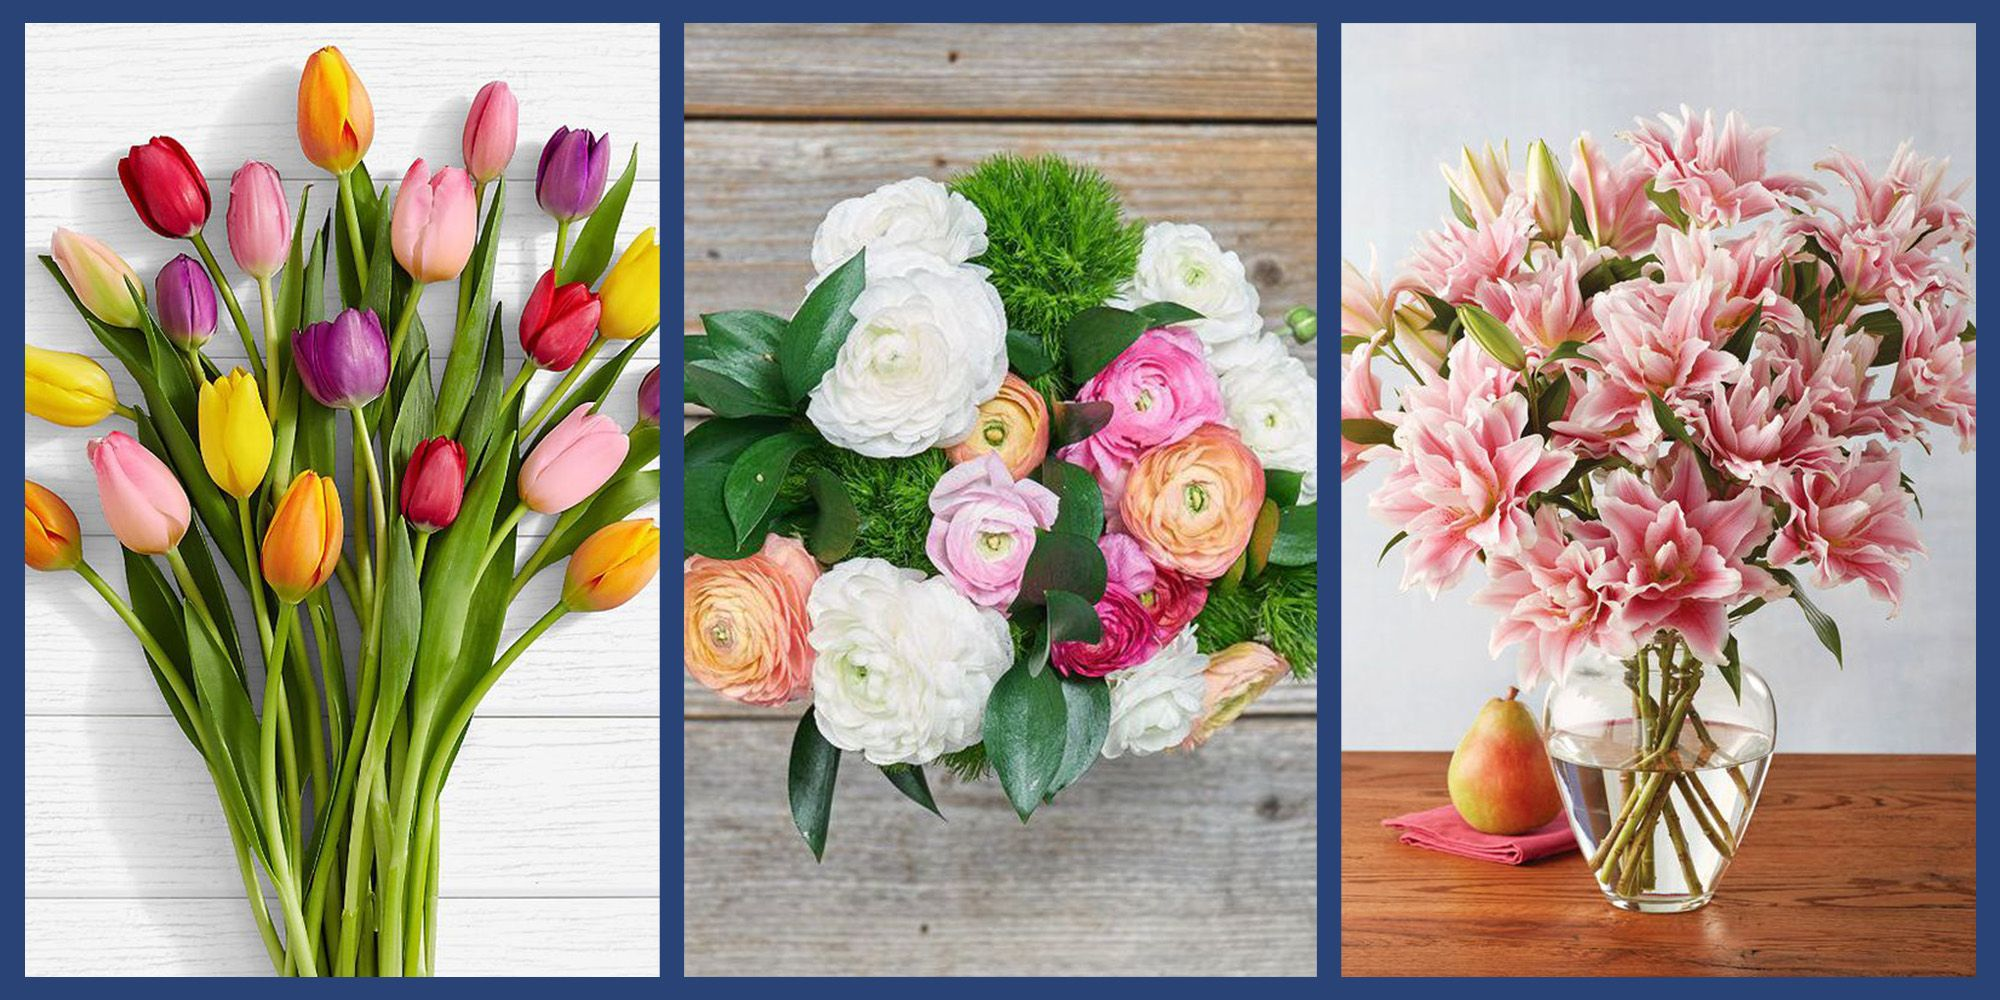 15 Mother's Day Flower Delivery Services That Are Sure to Get the Job Done